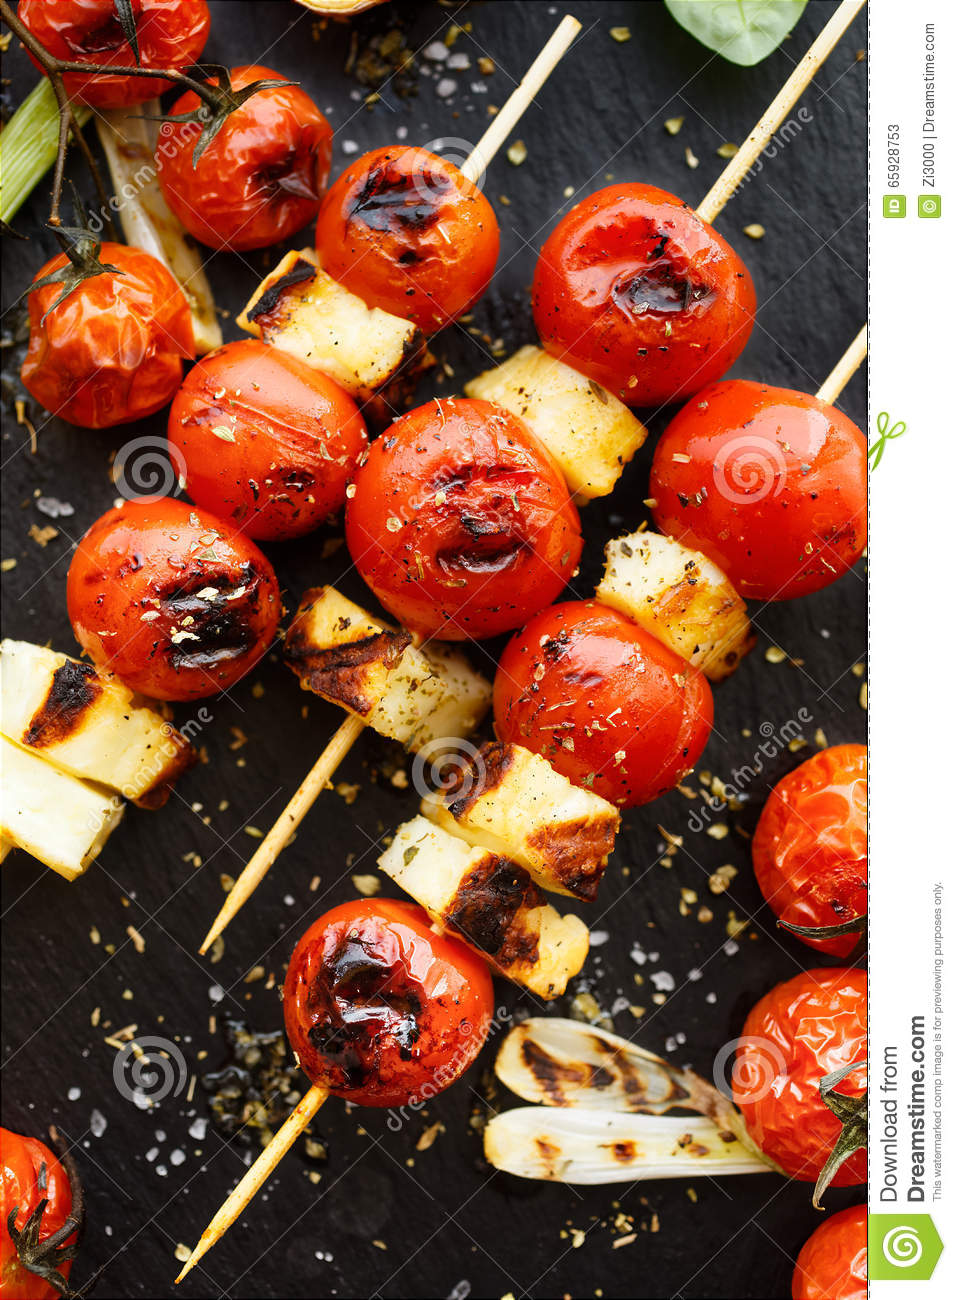 Halloumi cheese and cherry tomato skewers on stone black background